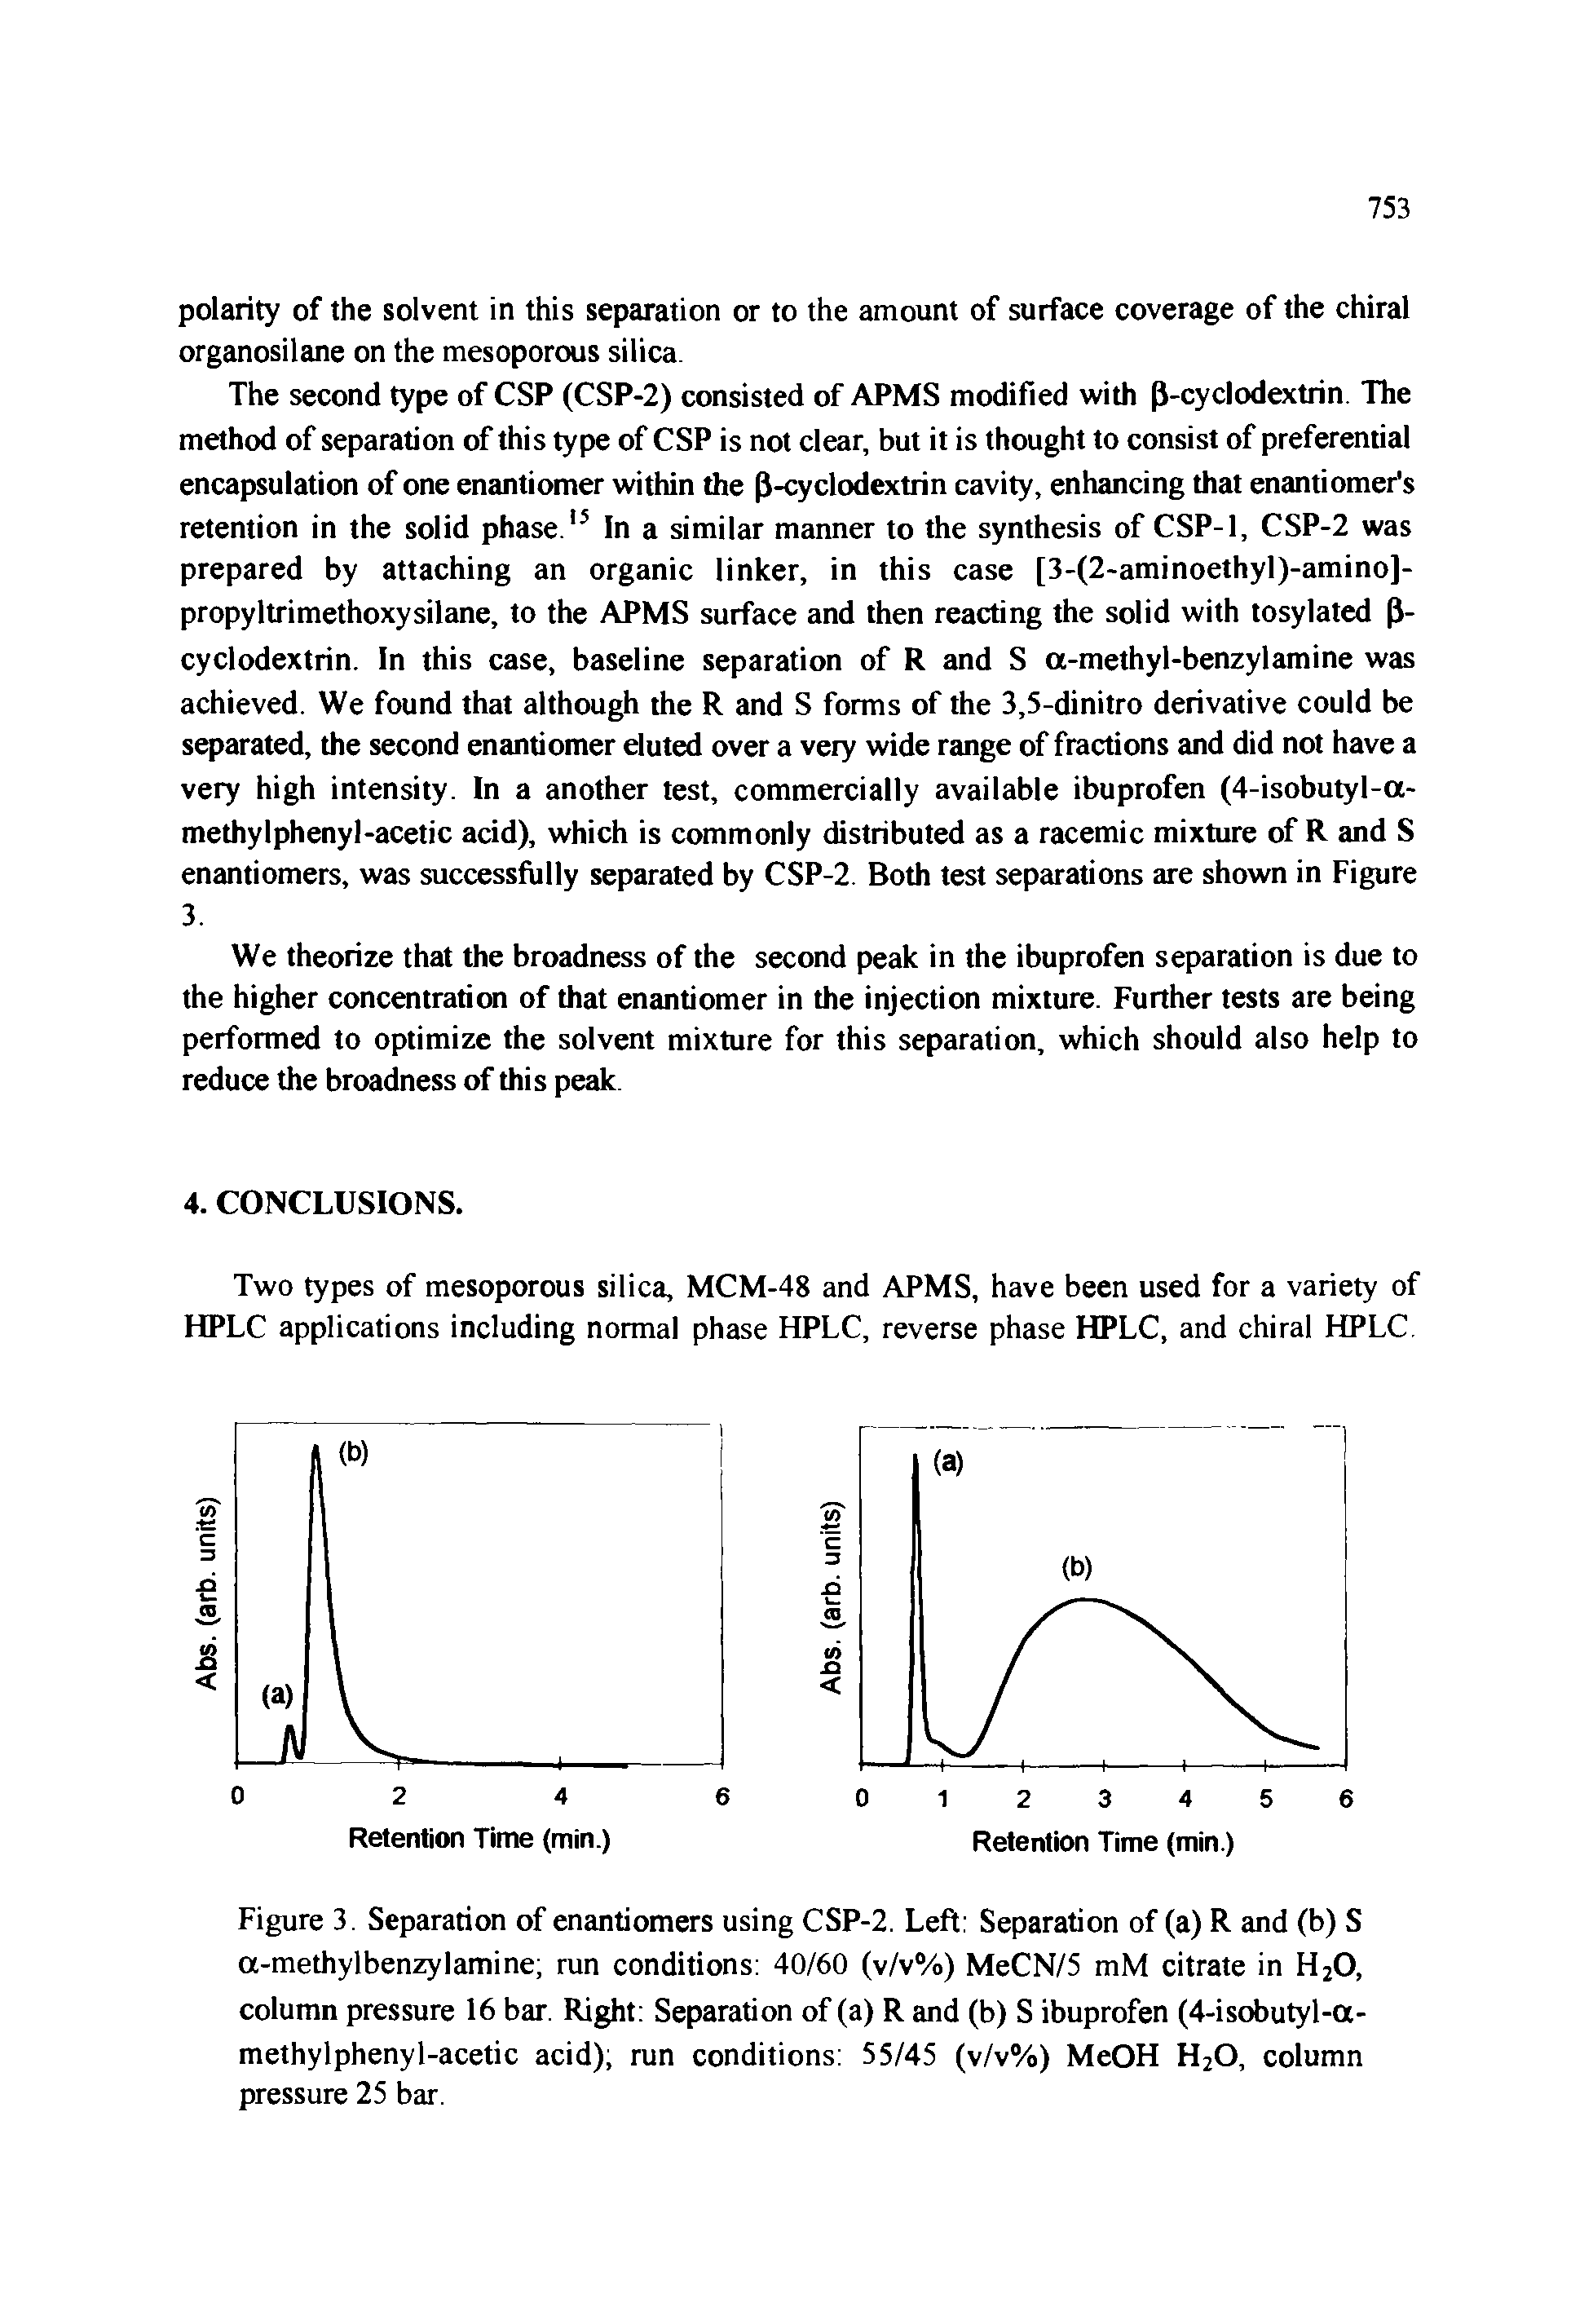 Figure 3. Separation of enantiomers using CSP-2. Left Separation of (a) R and (b) S a-methylbenzylamine run conditions 40/60 (v/v%) MeCN/5 mM citrate in H20, column pressure 16 bar. Right Separation of (a) R and (b) S ibuprofen (4-isobutyl-a-methylphenyl-acetic acid) run conditions 55/45 (v/v%) MeOH H20, column pressure 25 bar.